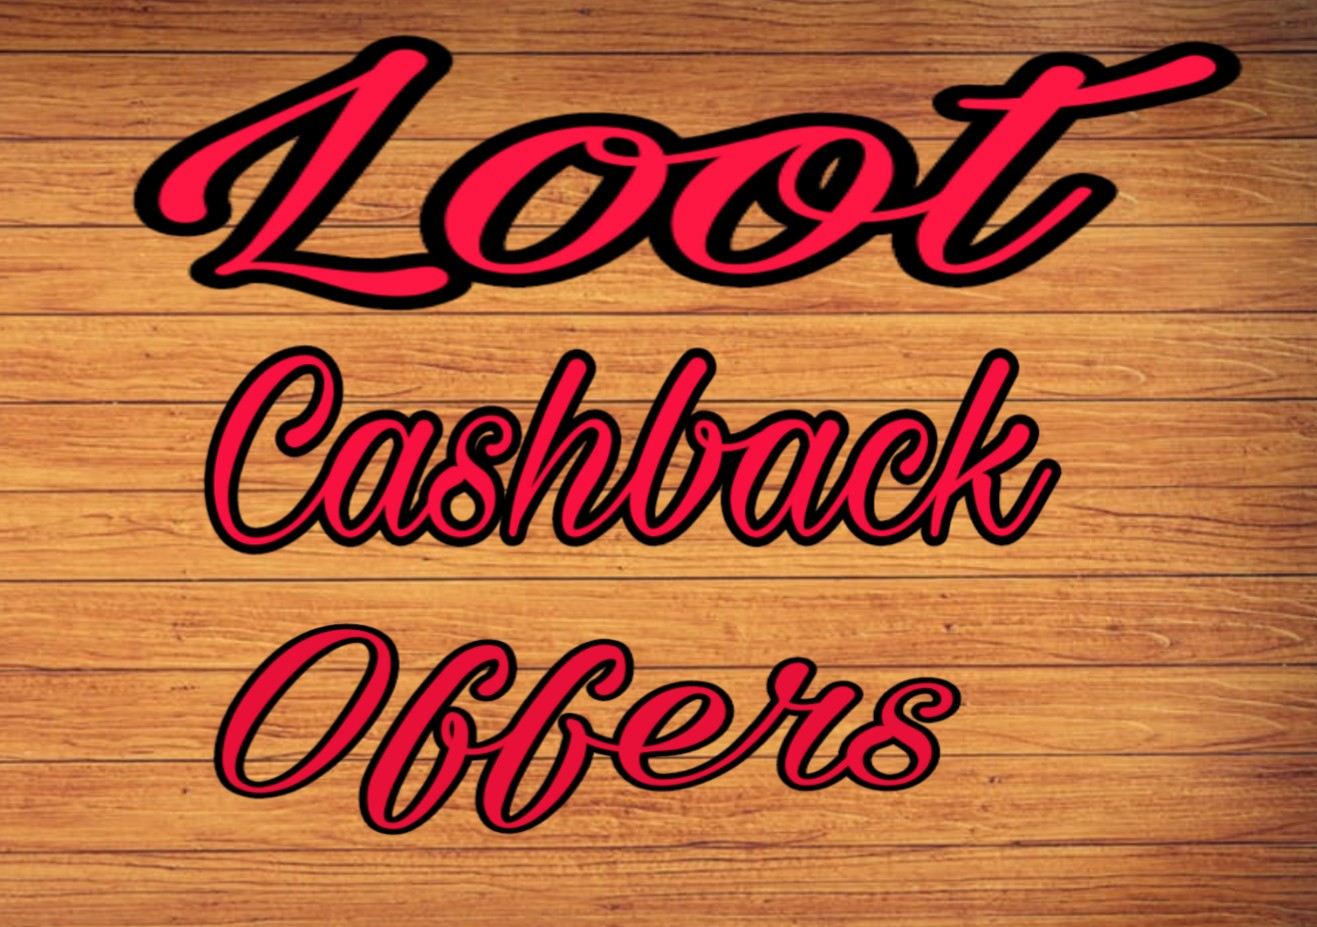 Best Online Cashback Offers